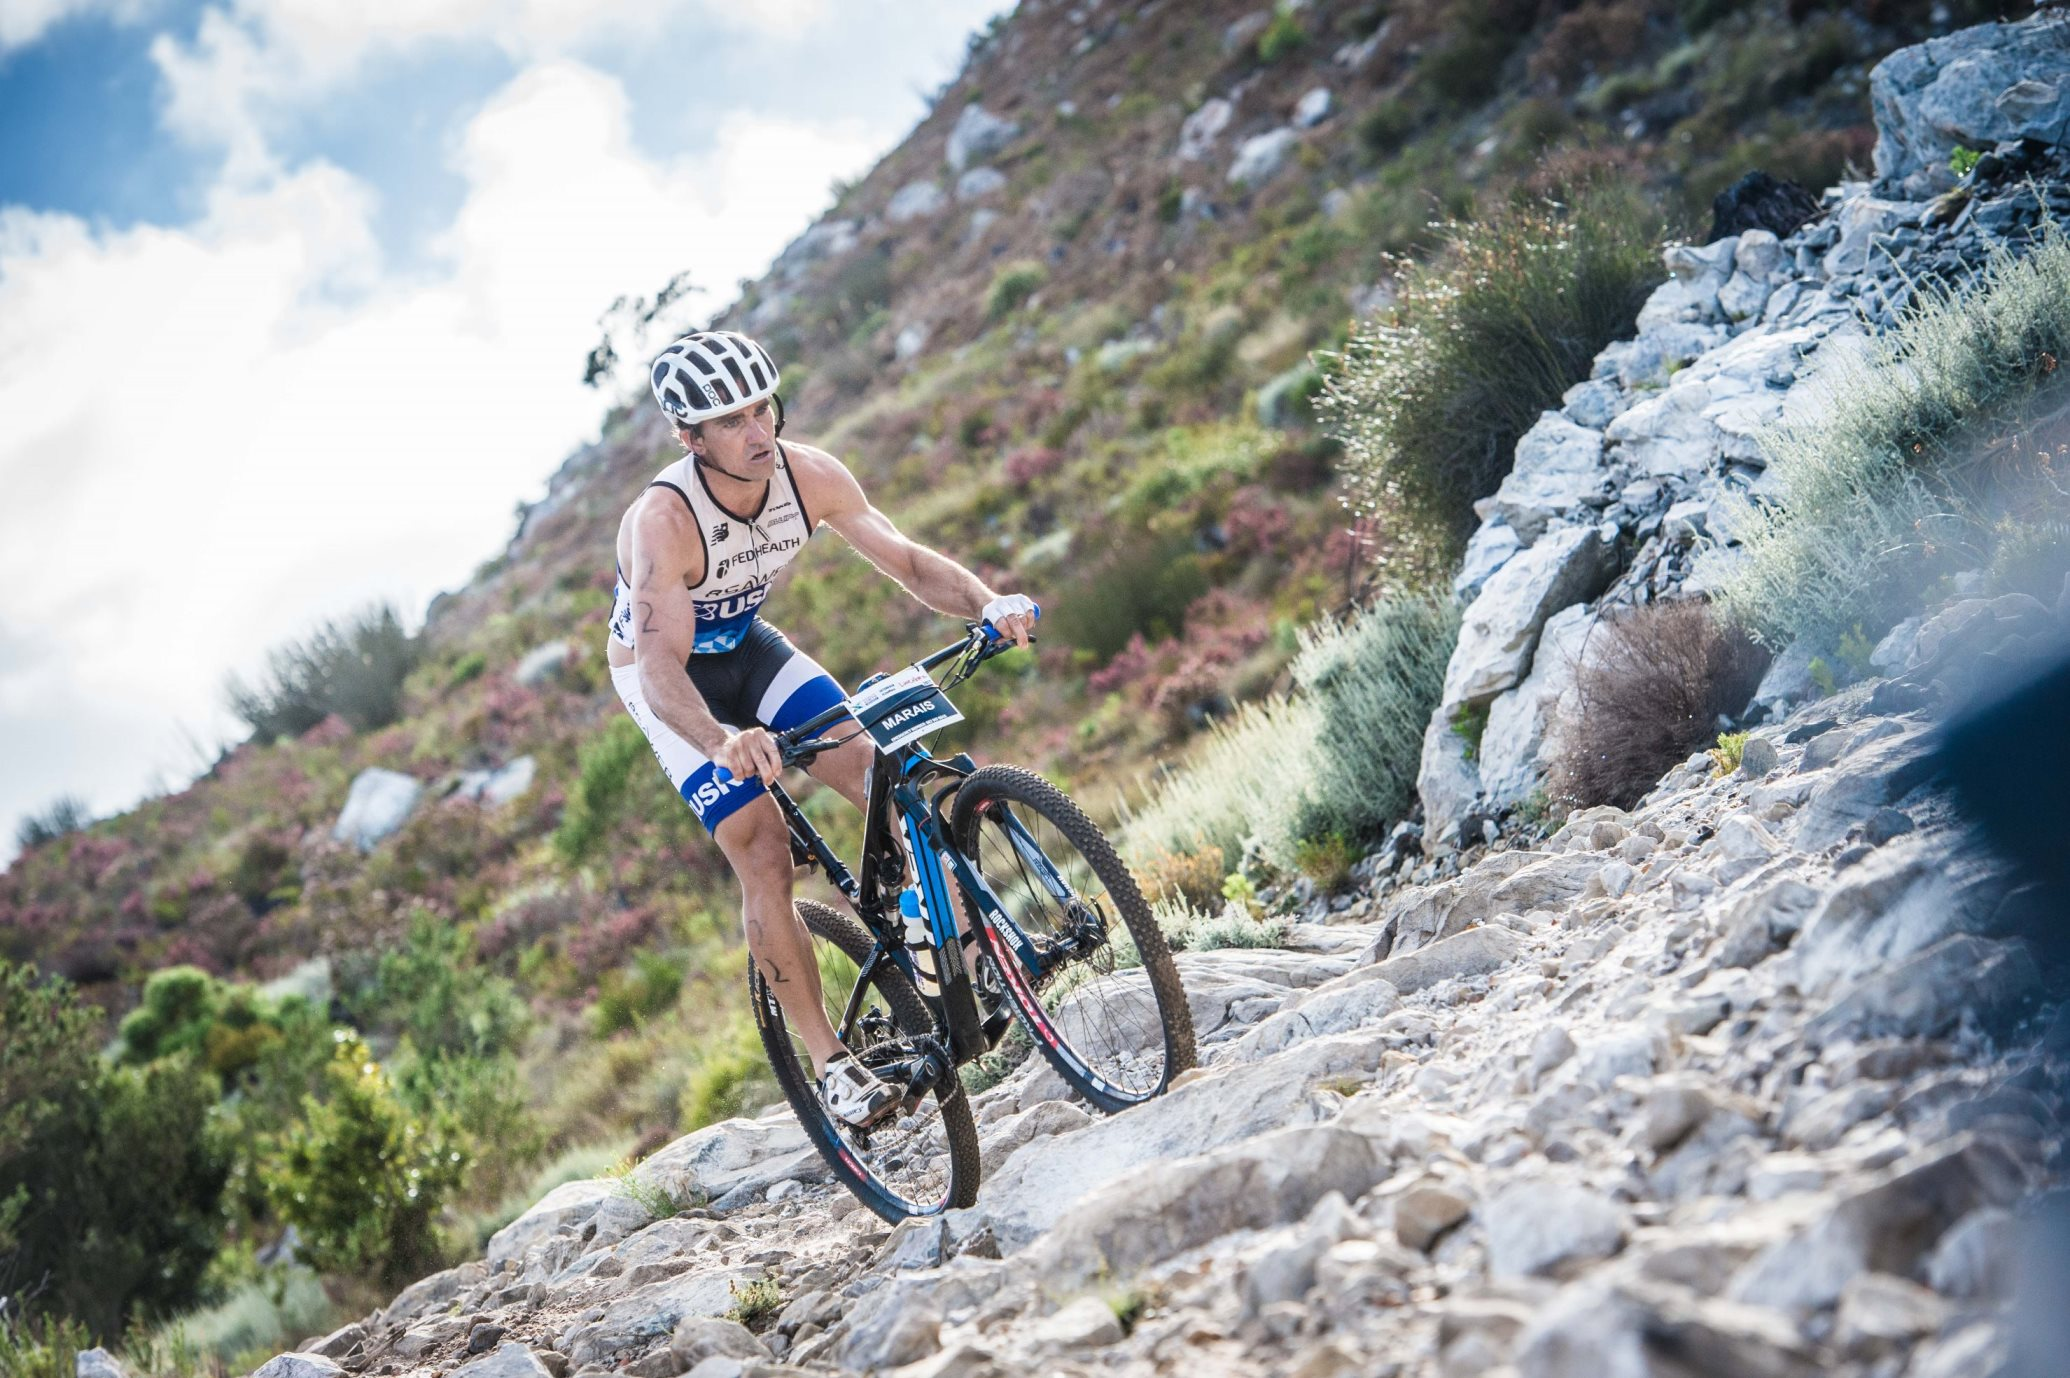 XTERRA route equates to heaven for outdoor enthusiasts